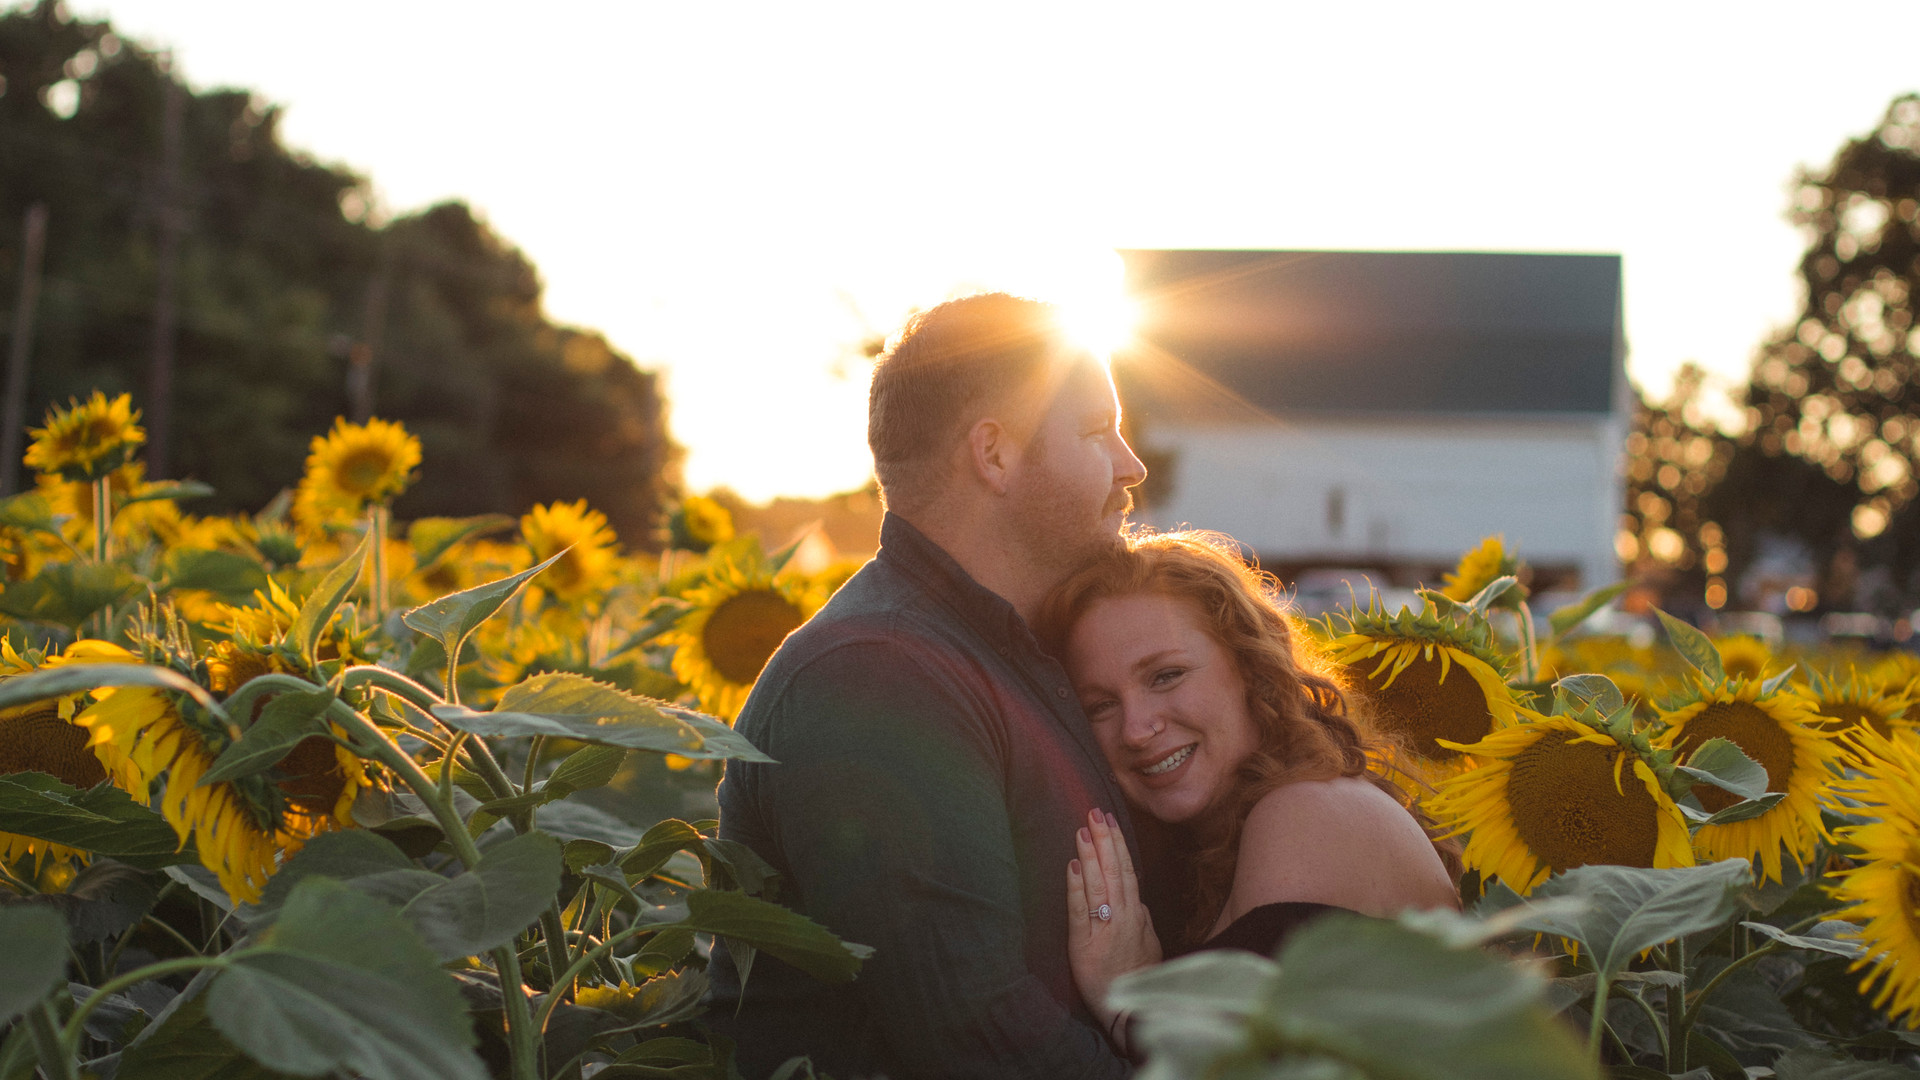 Sunflowers-Maternity-Photos-Harford County-Maryland-Photographer-Jennifer Schaefer Photography